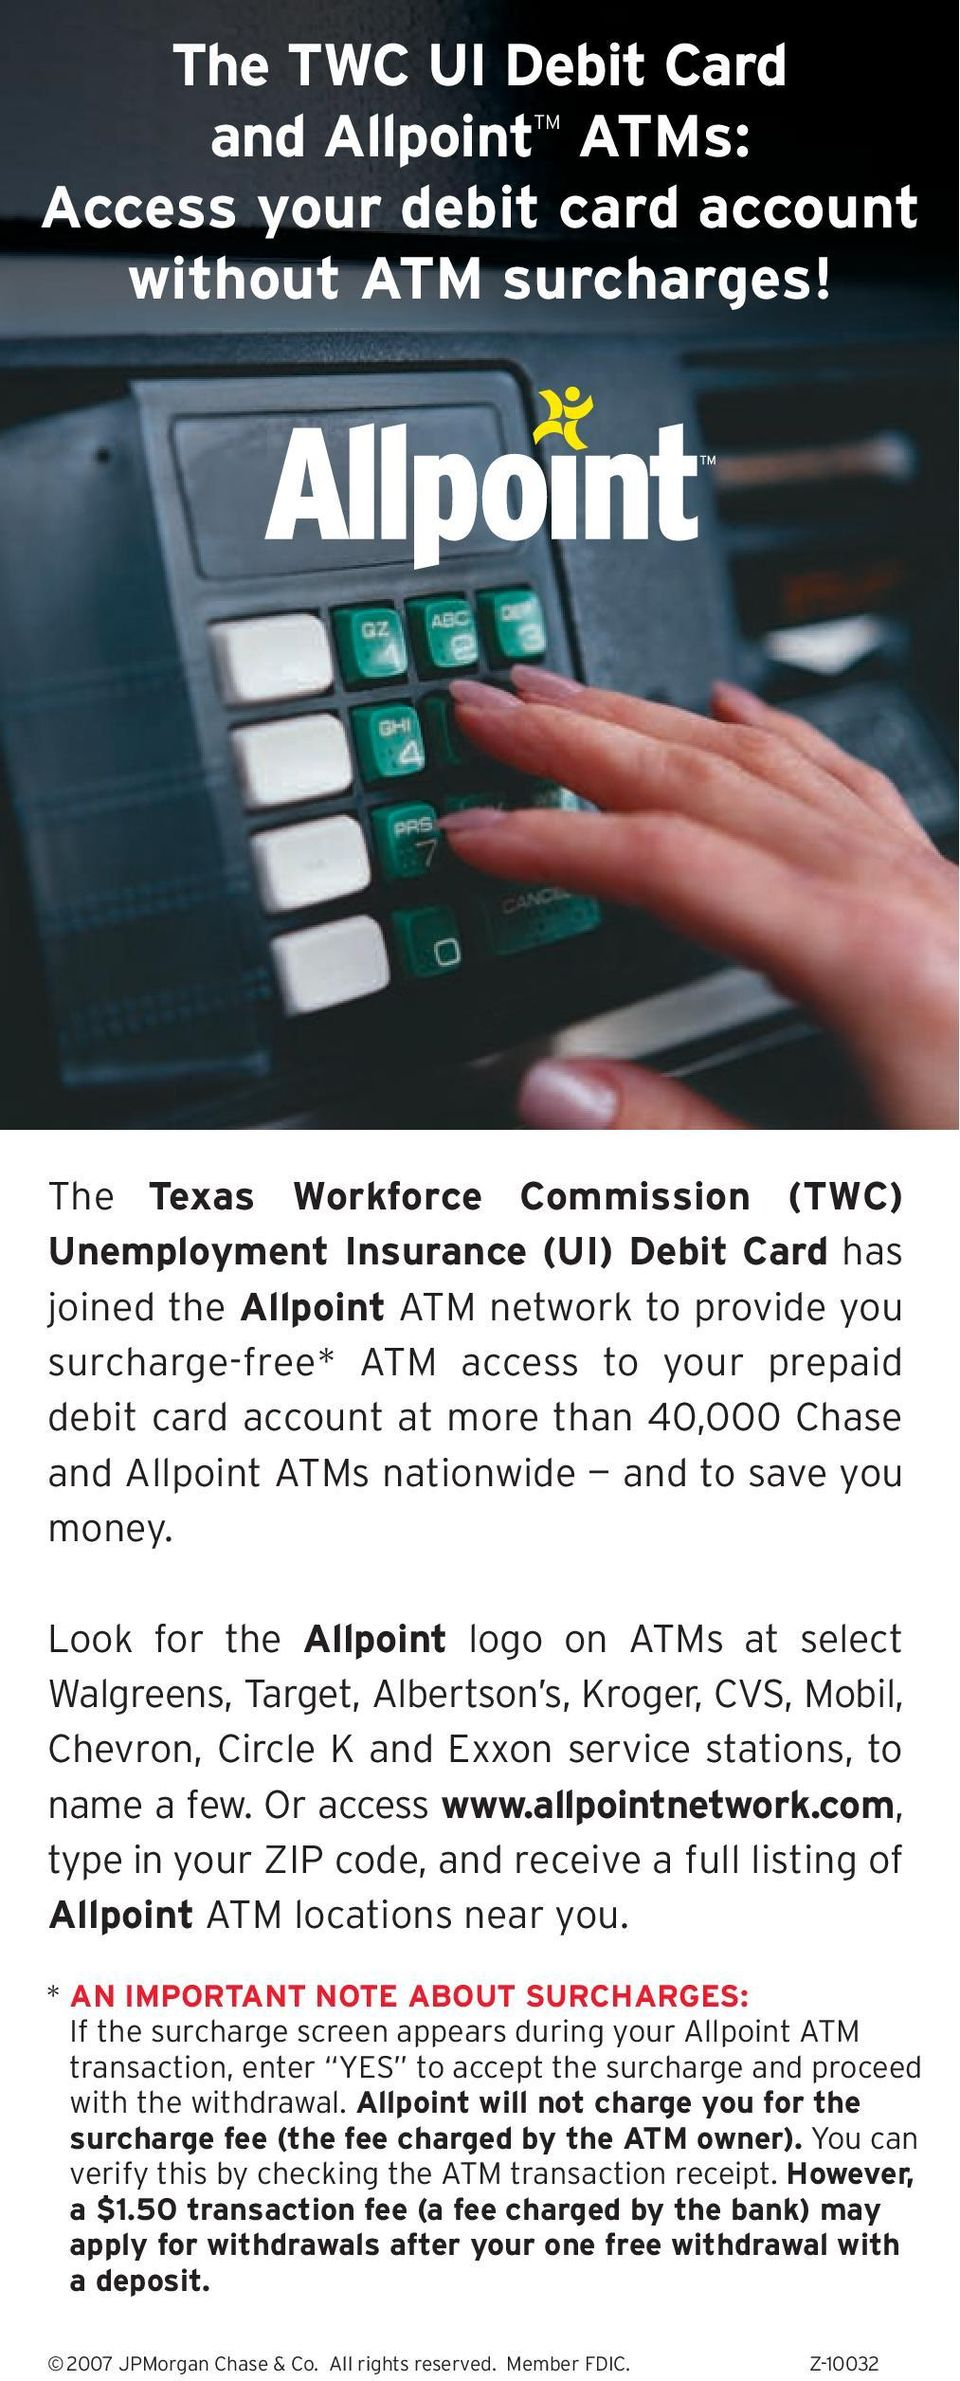 than 40,000 Chase and Allpoint ATMs nationwide and to save you money.